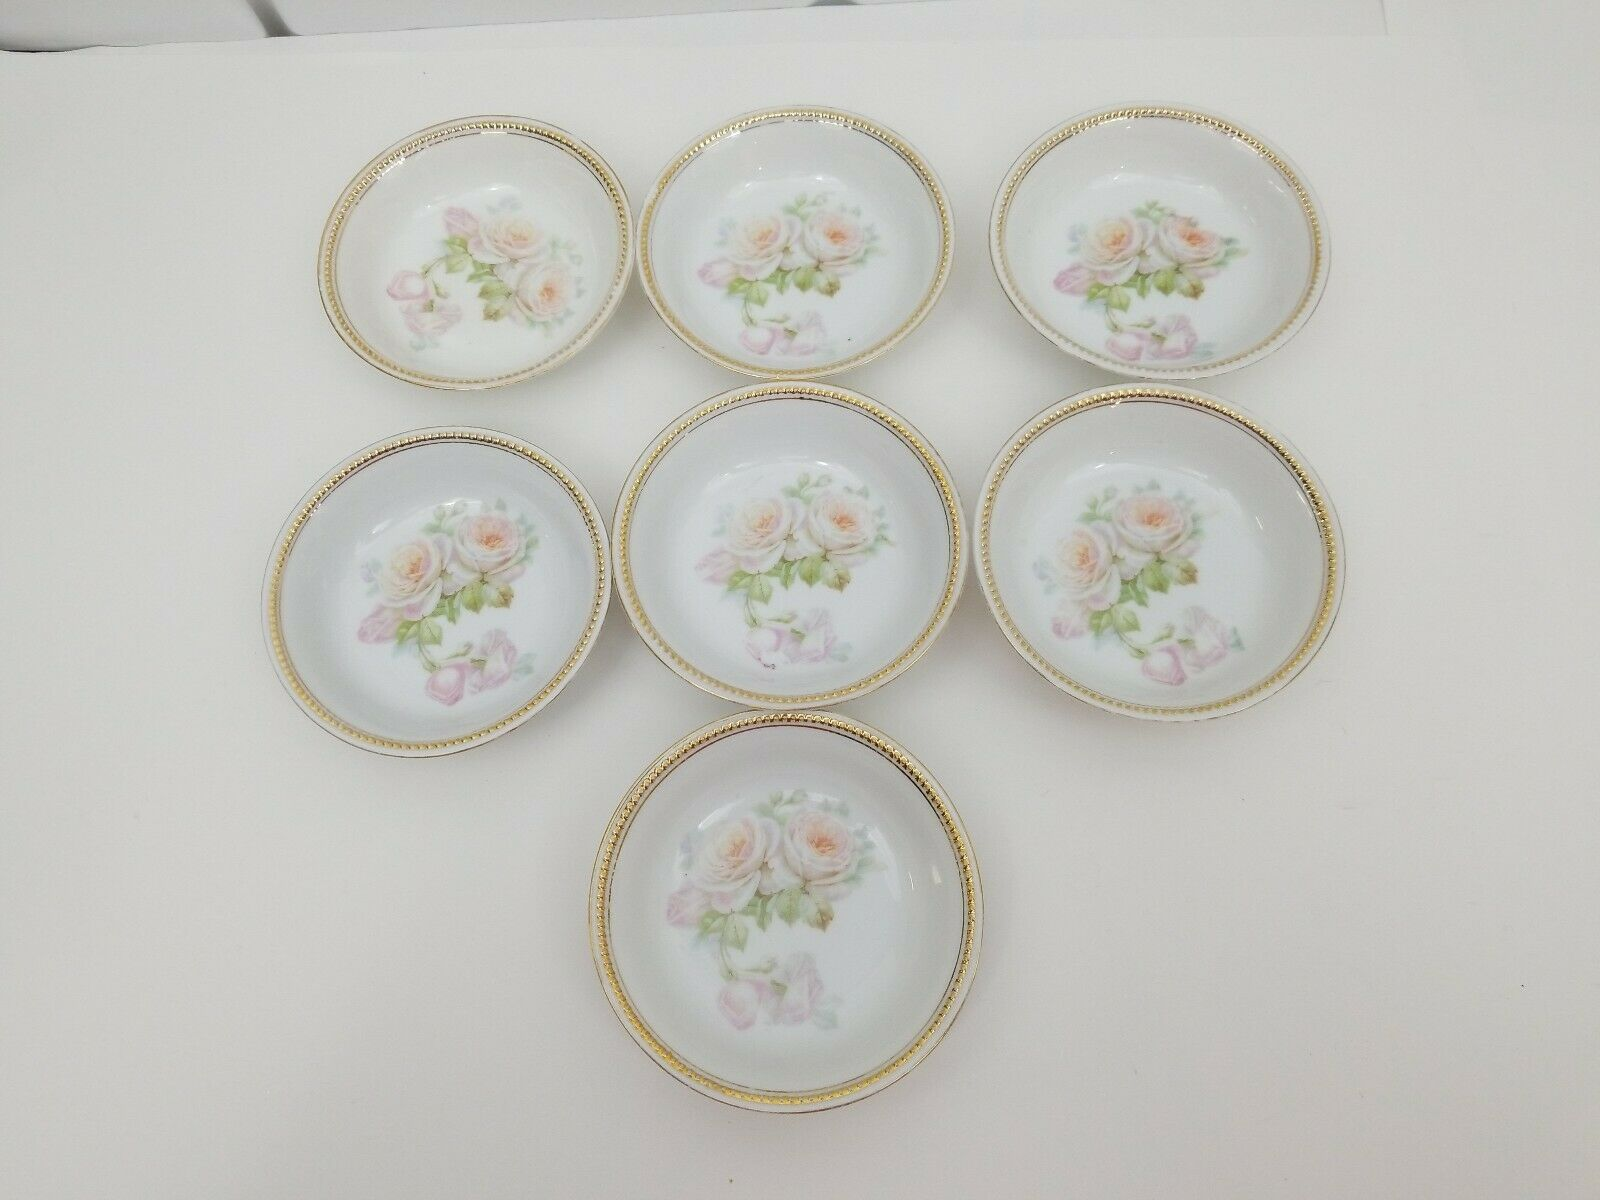 "PK Silesia China Dessert Bowls Lot of 7 White Roses Gold Trim 5 3/8"" Poland image 1"